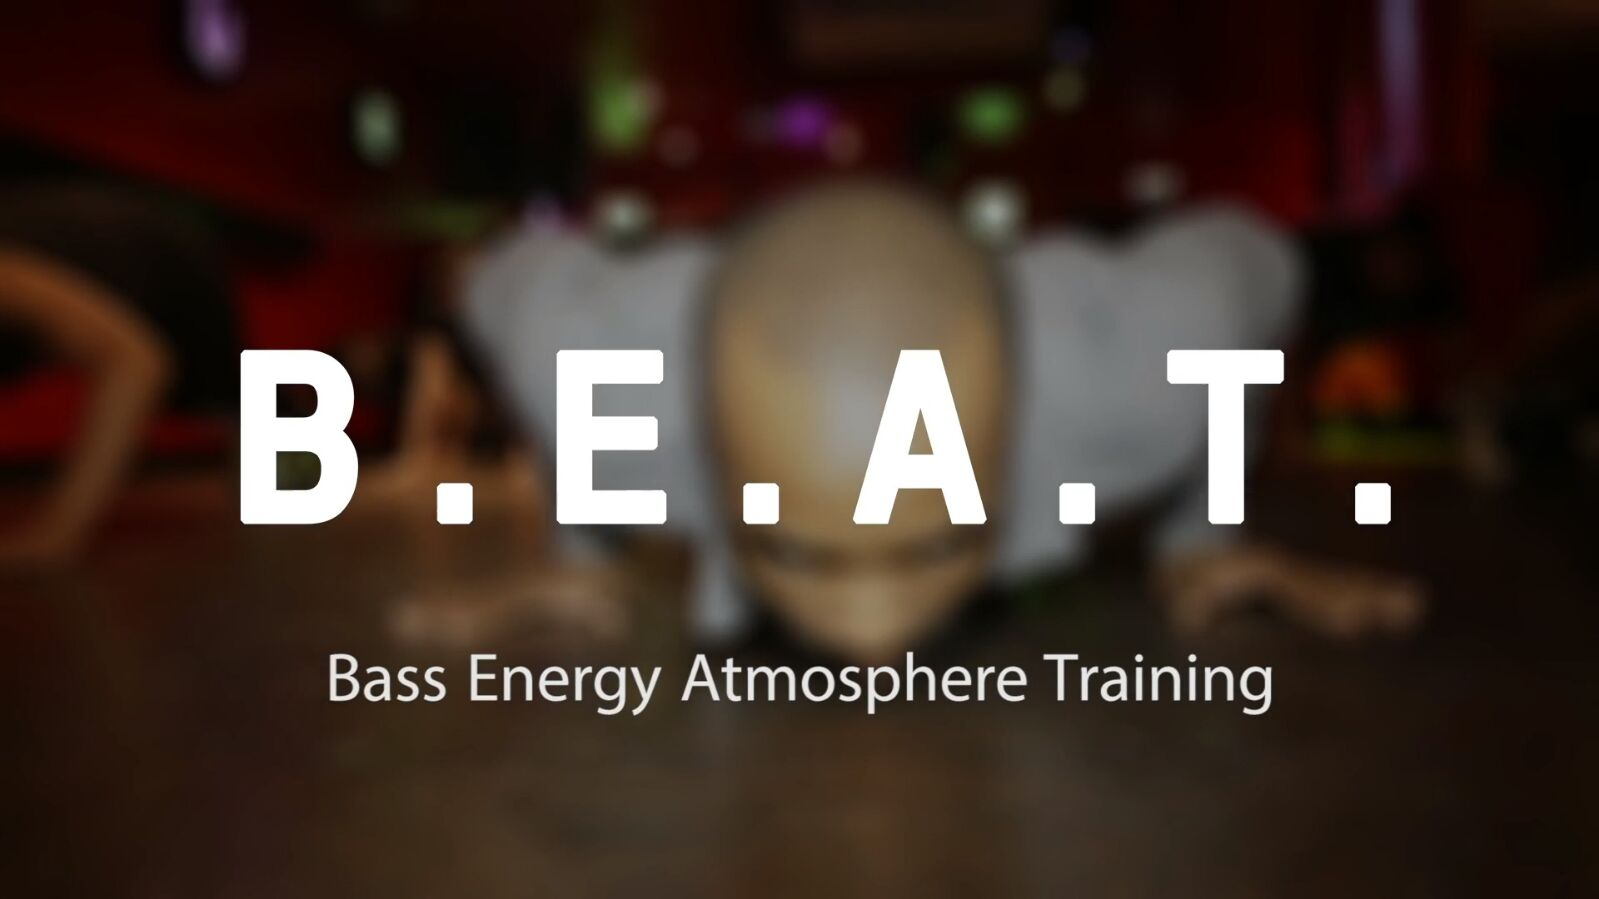 B.E.A.T. (Bass Energy Atmosphere Training)